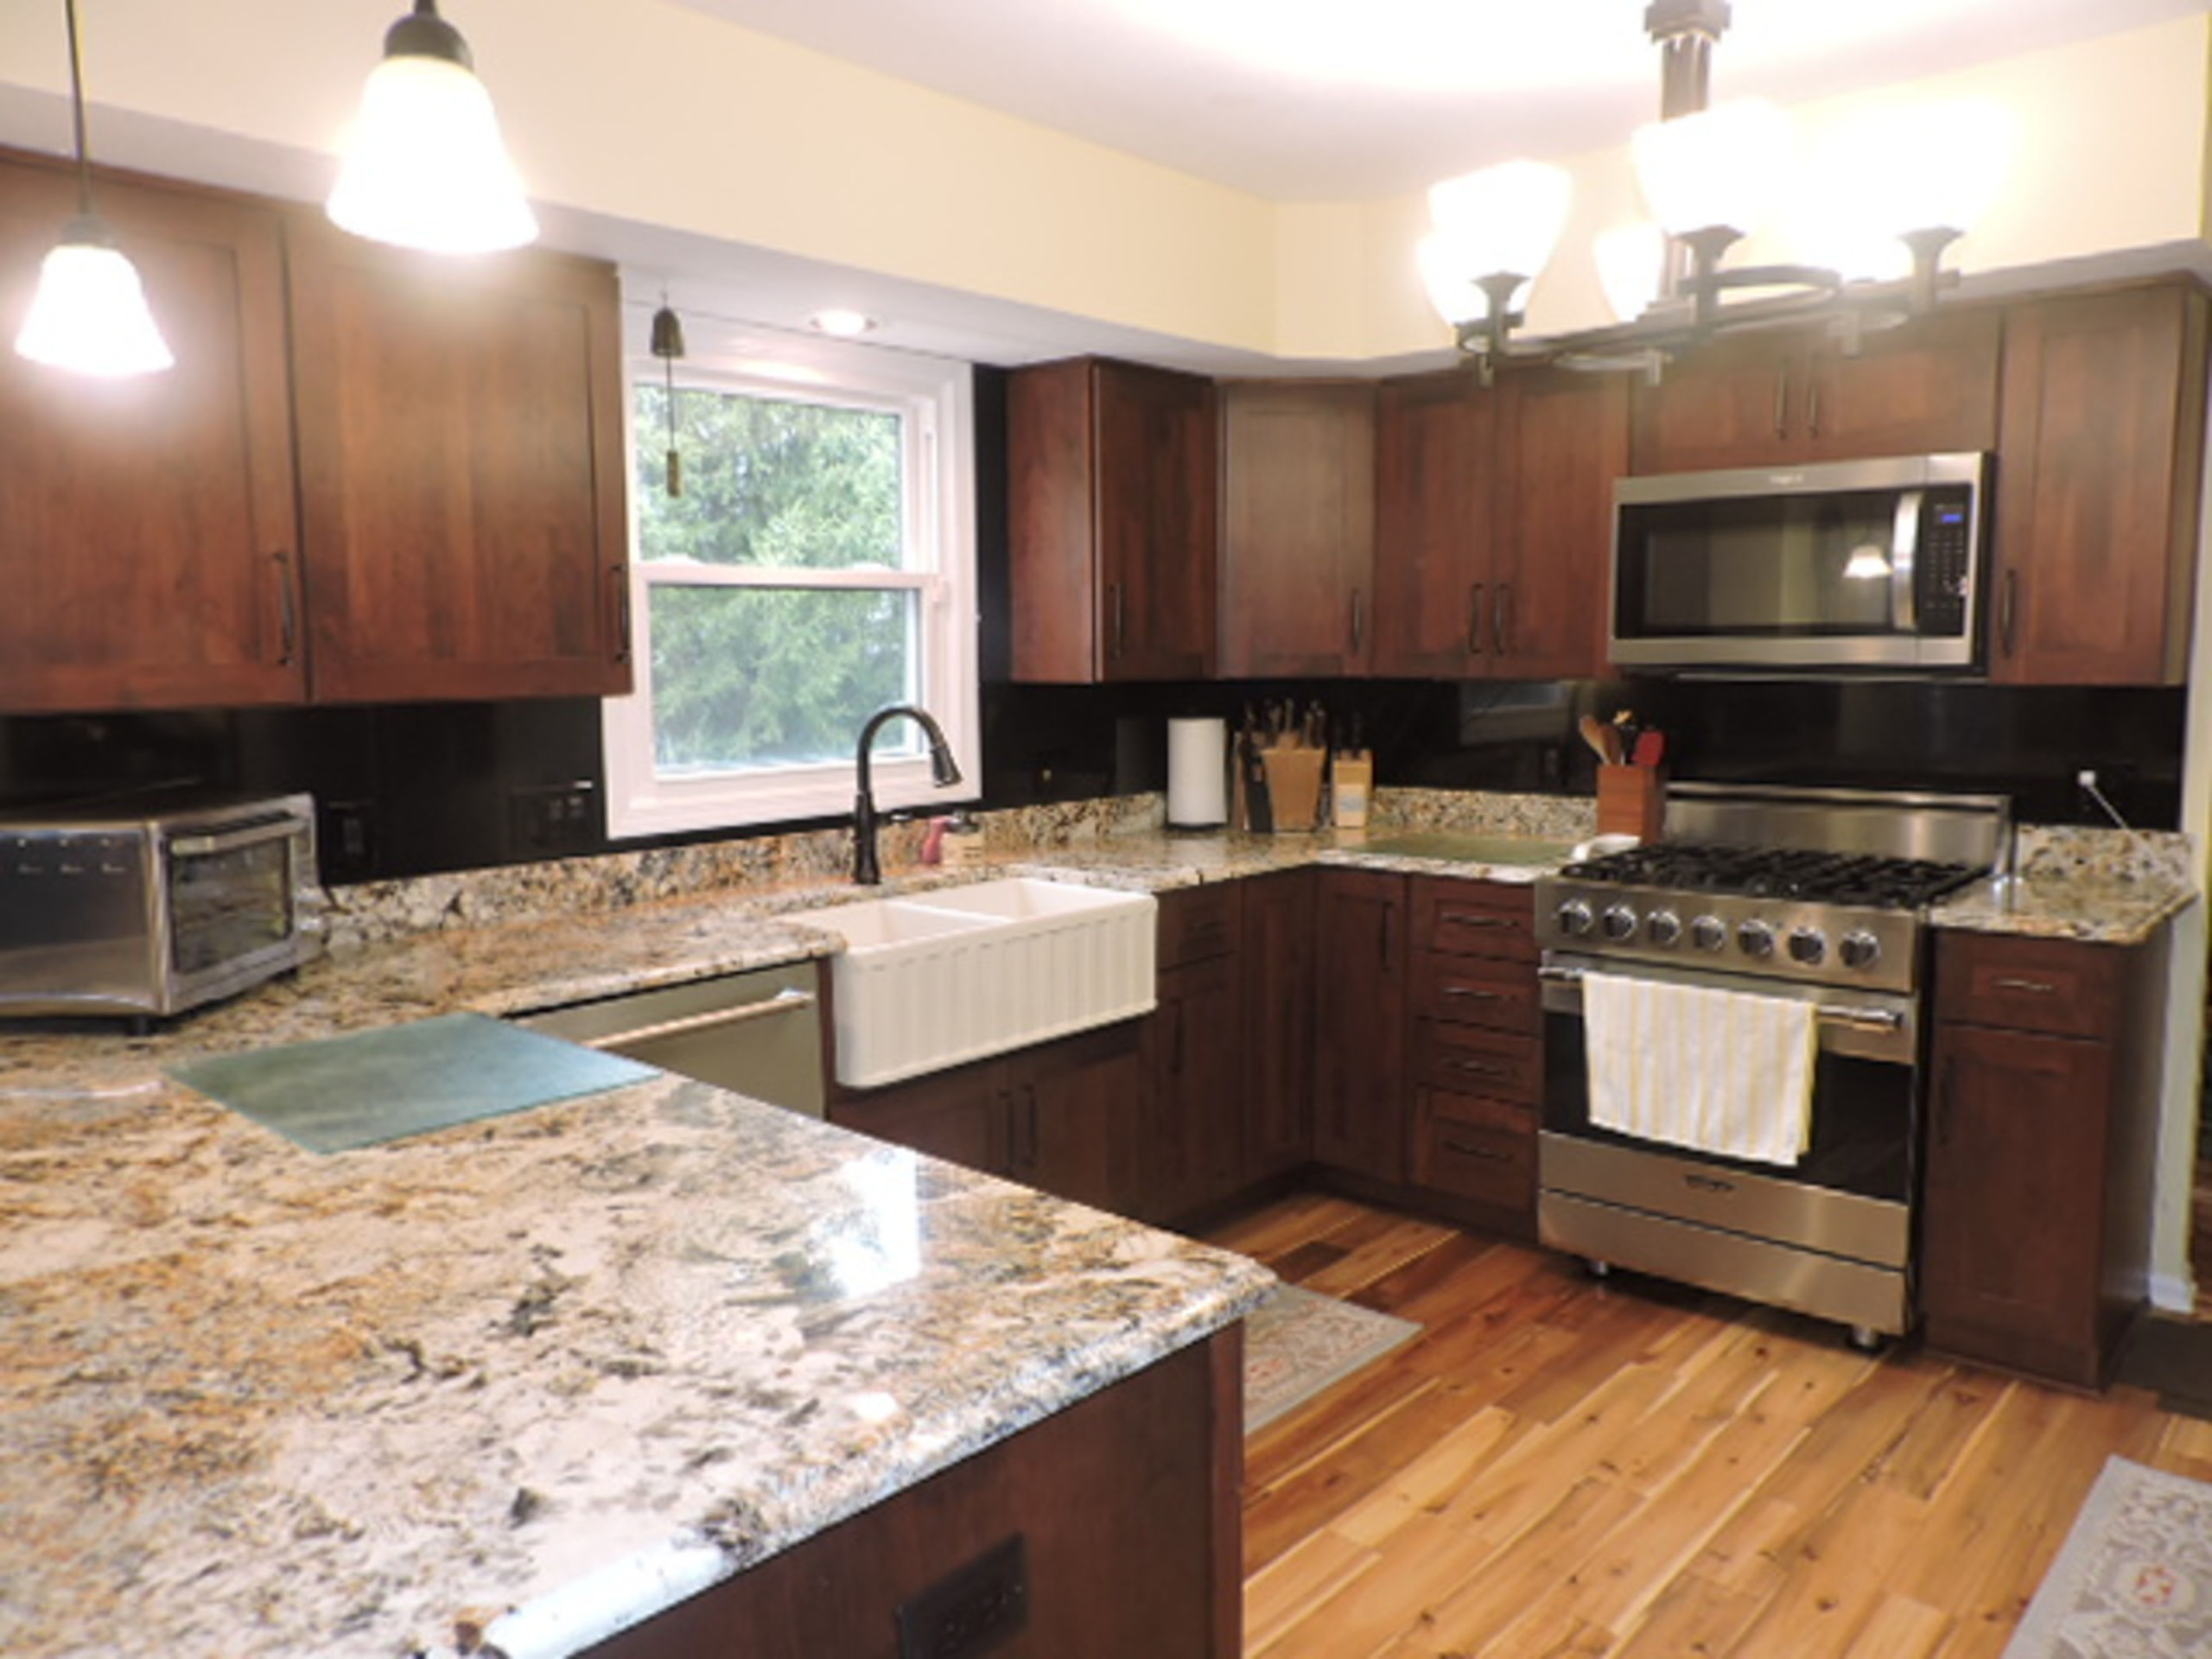 NEW CUSTOM KITCHEN OPENS TO THE FAMILY ROOM